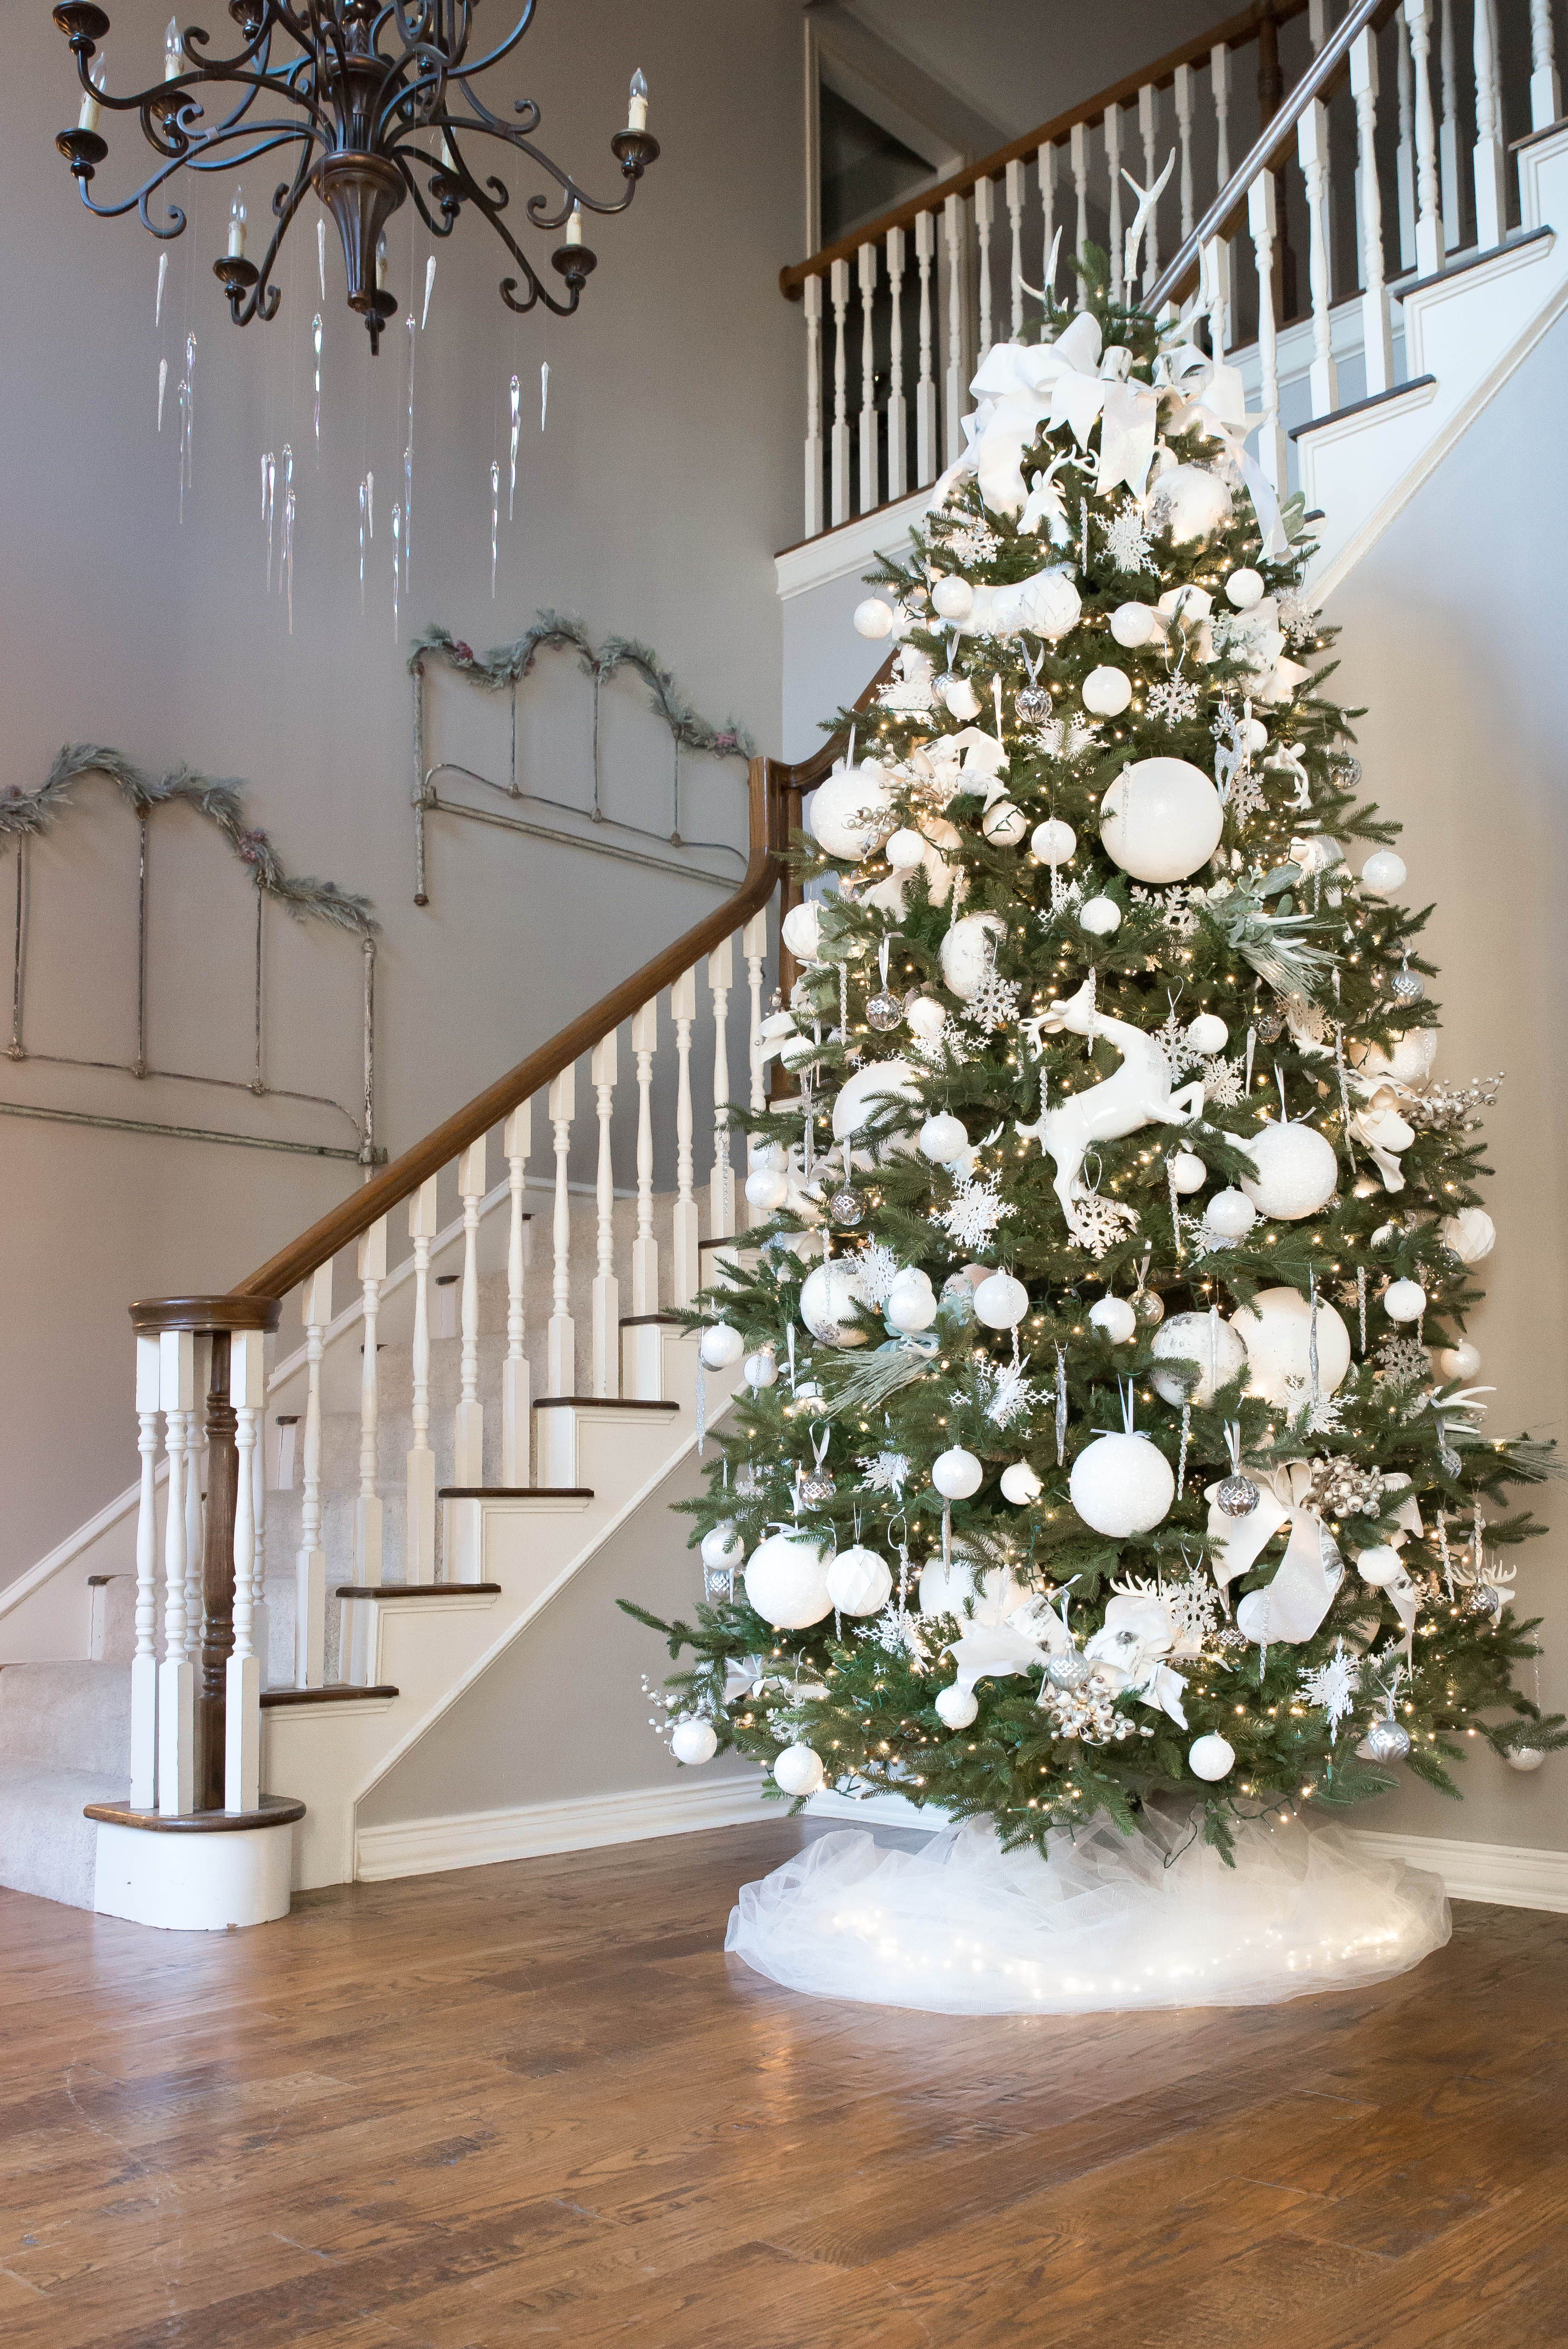 Christmas Decor Home Tour 2019 With Video In 2020 Christmas Decor Inspiration Christmas Home Christmas Tree Inspiration